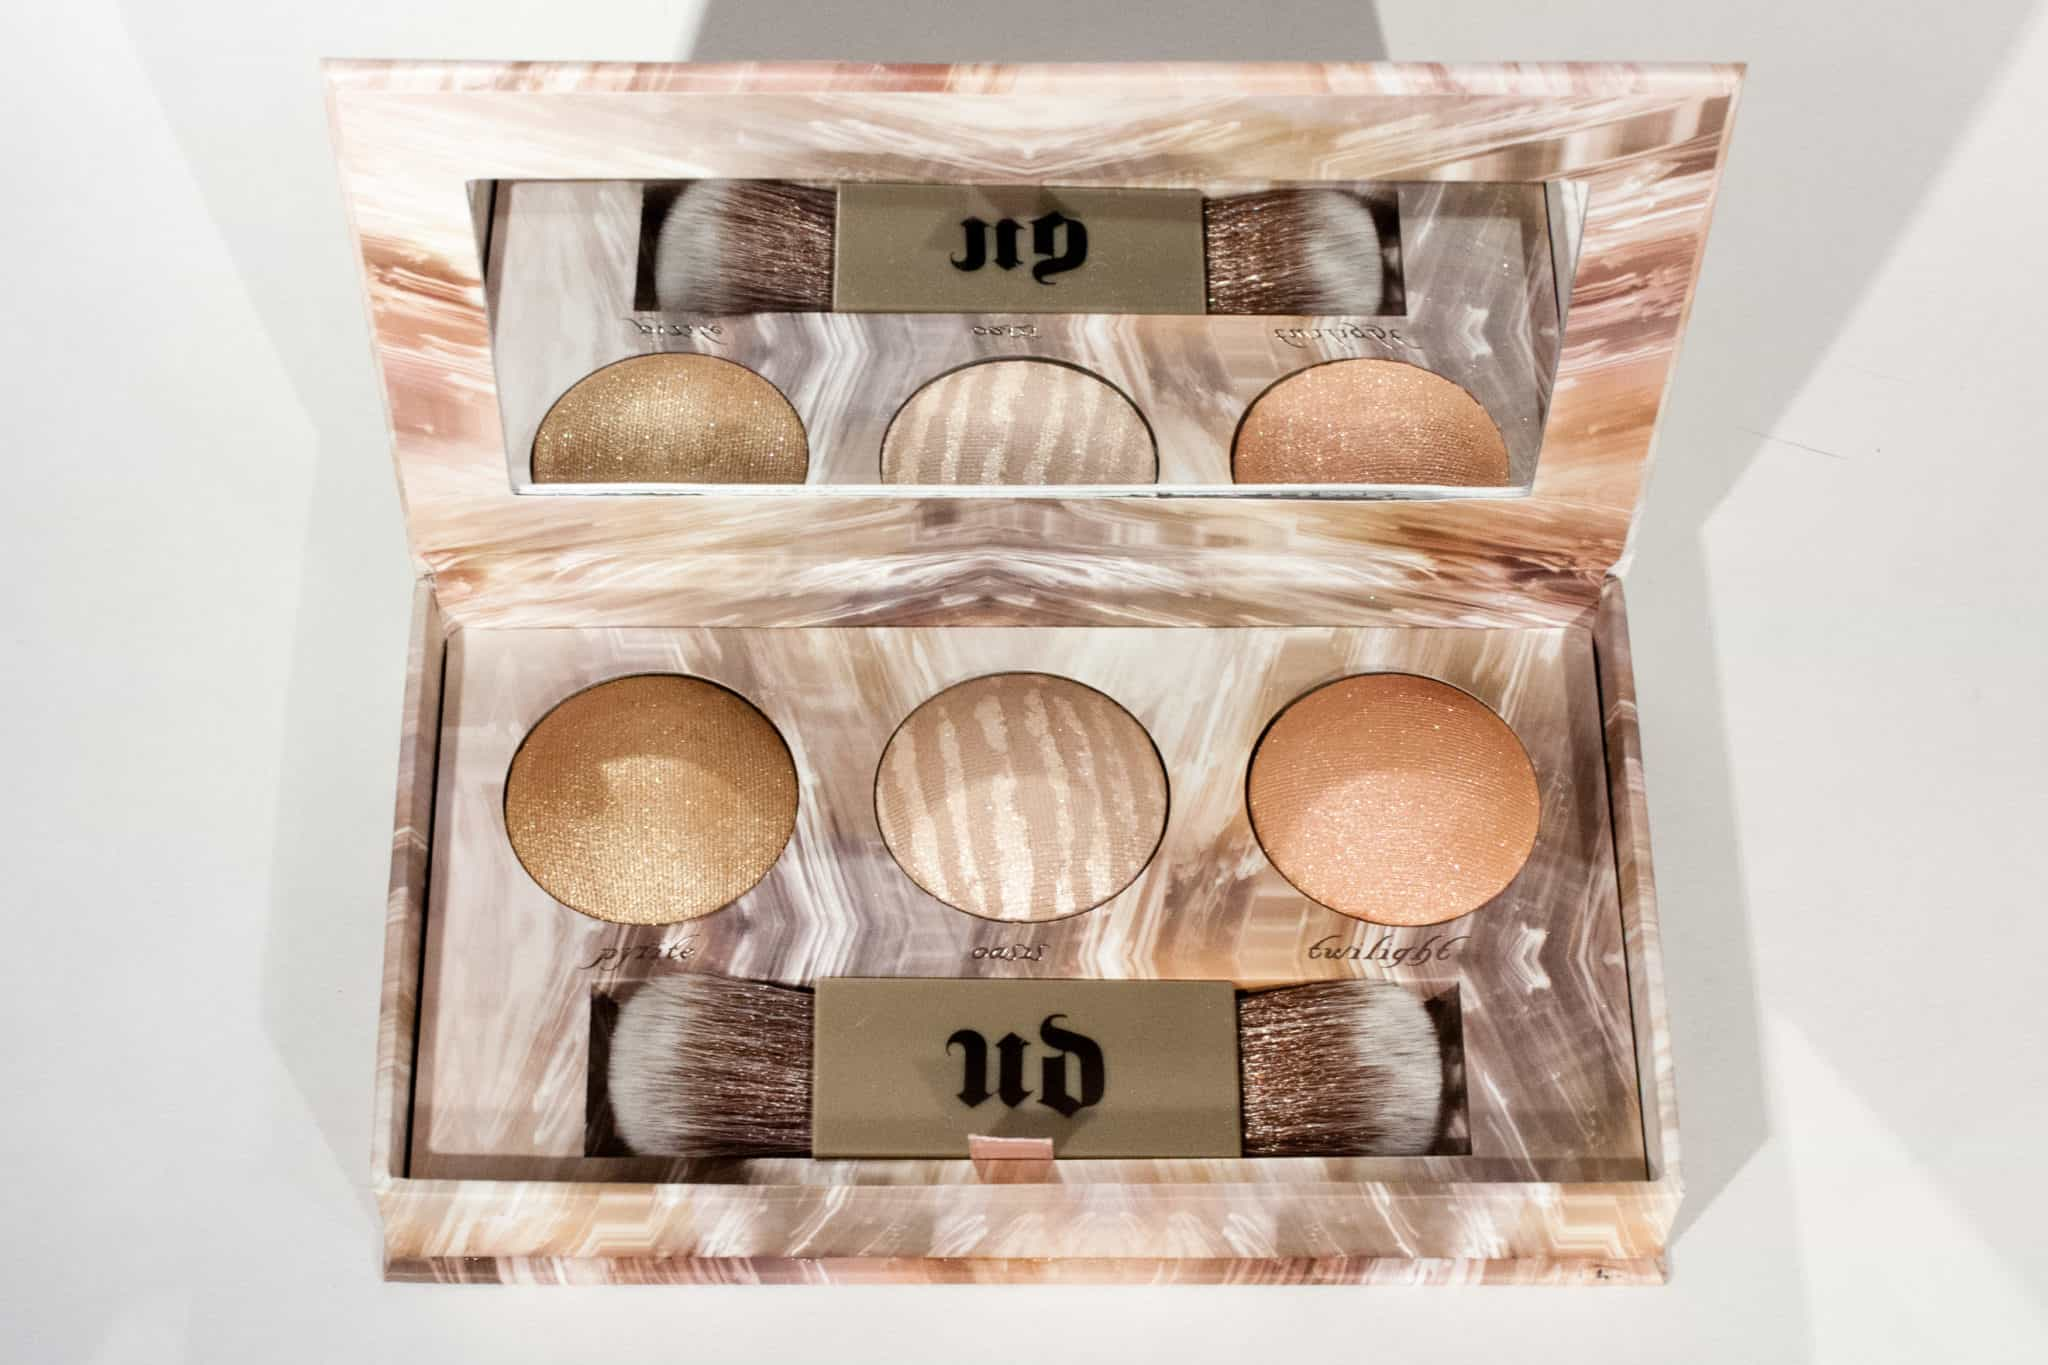 Urban Decay Naked Illuminated Trio   Limited Edition Highlighter Palette   Blog